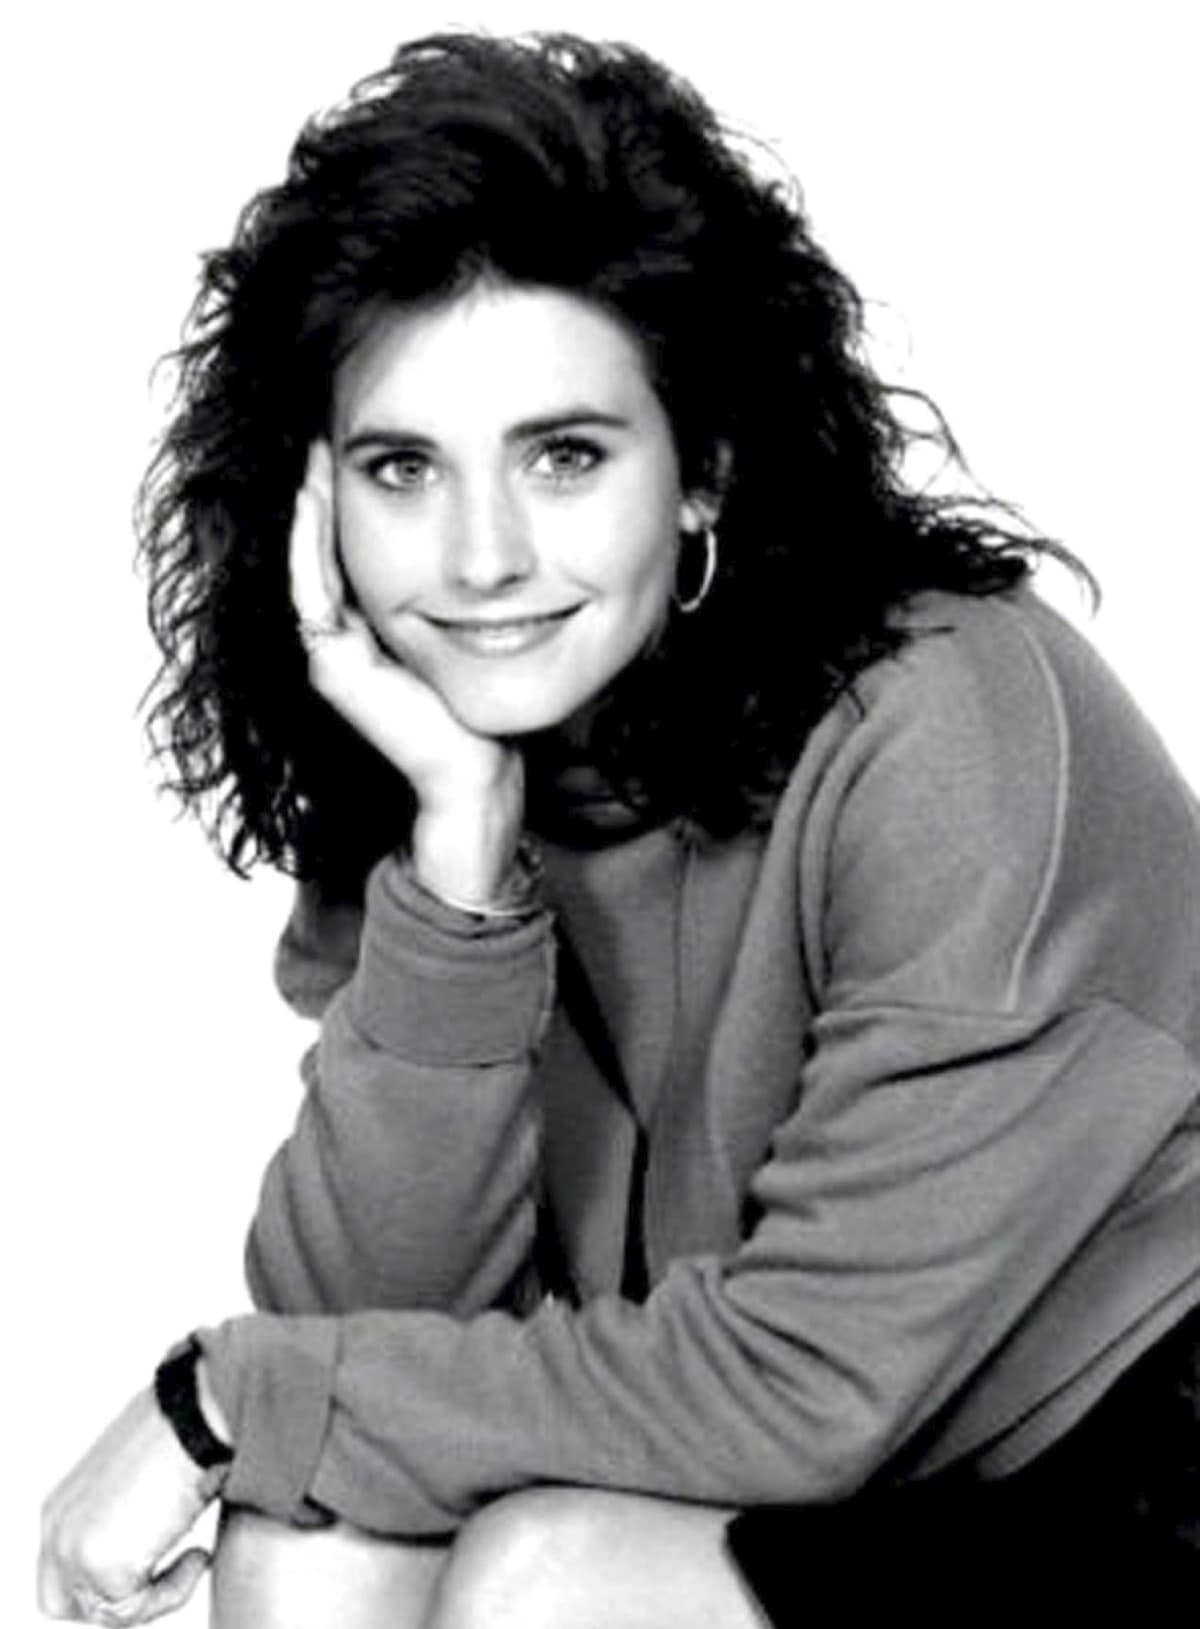 Courteney Cox was 22 years old when she made her debut as the girlfriend of Michael J. Fox's character in the NBC comedy series Family Ties